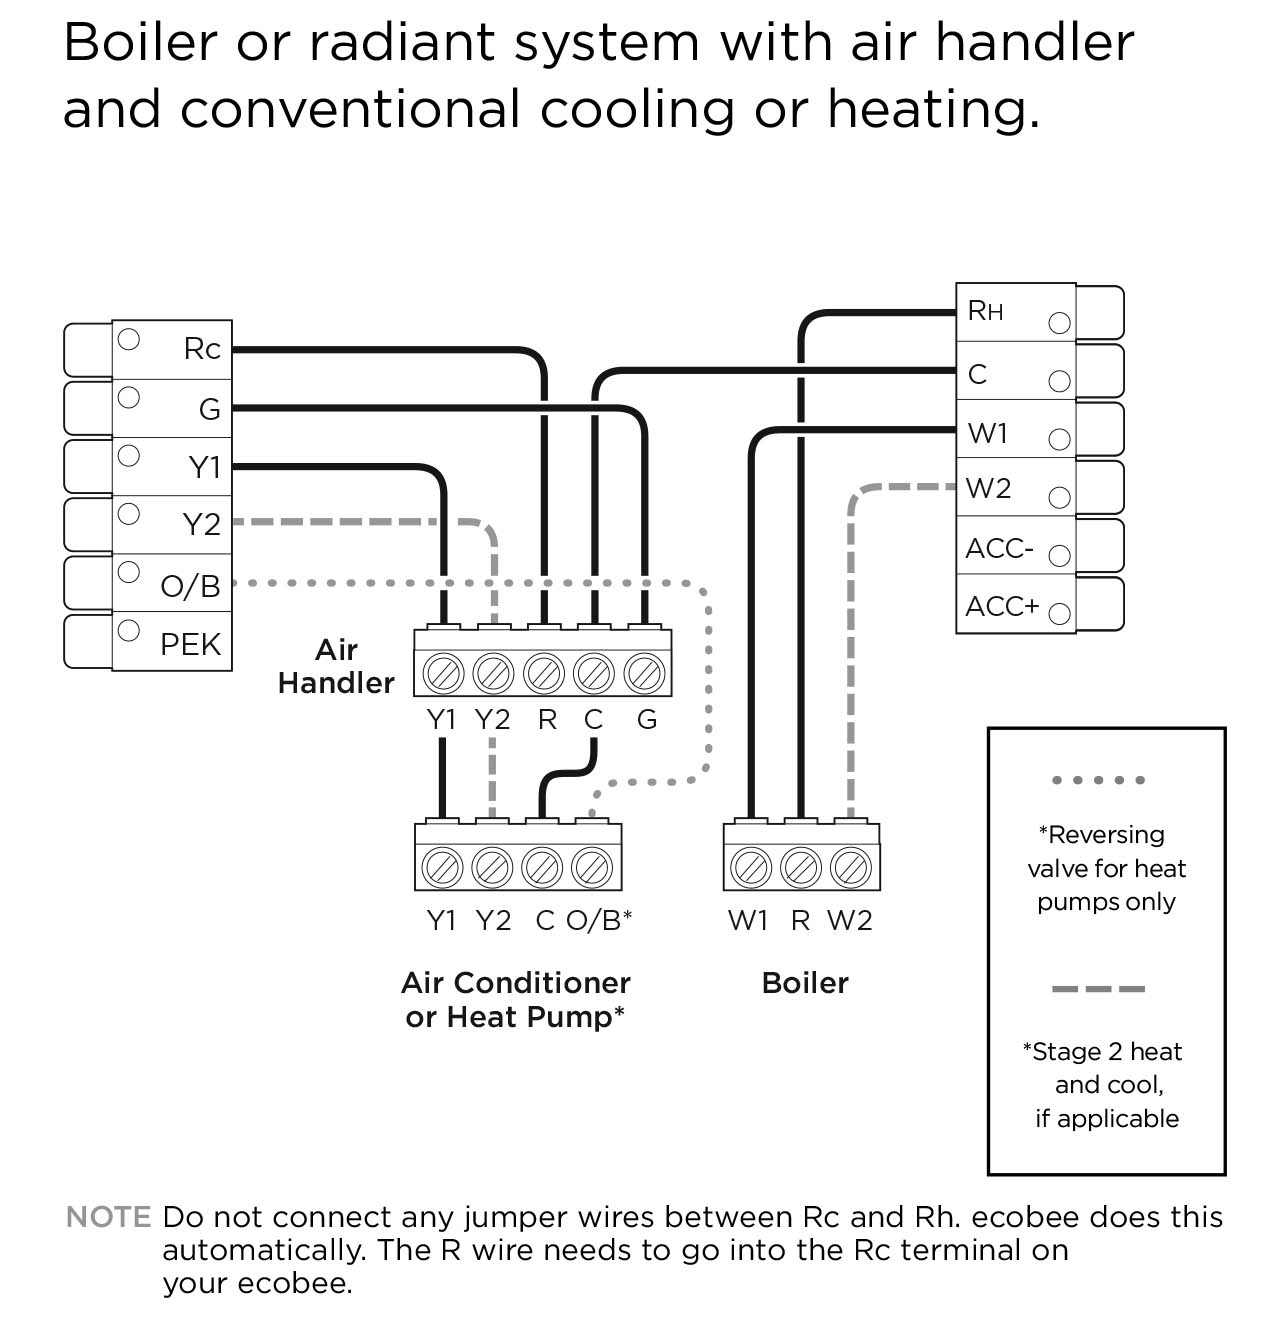 Ecobee4 Wiring Diagrams – Ecobee Support - Heatpump Wiring Diagram